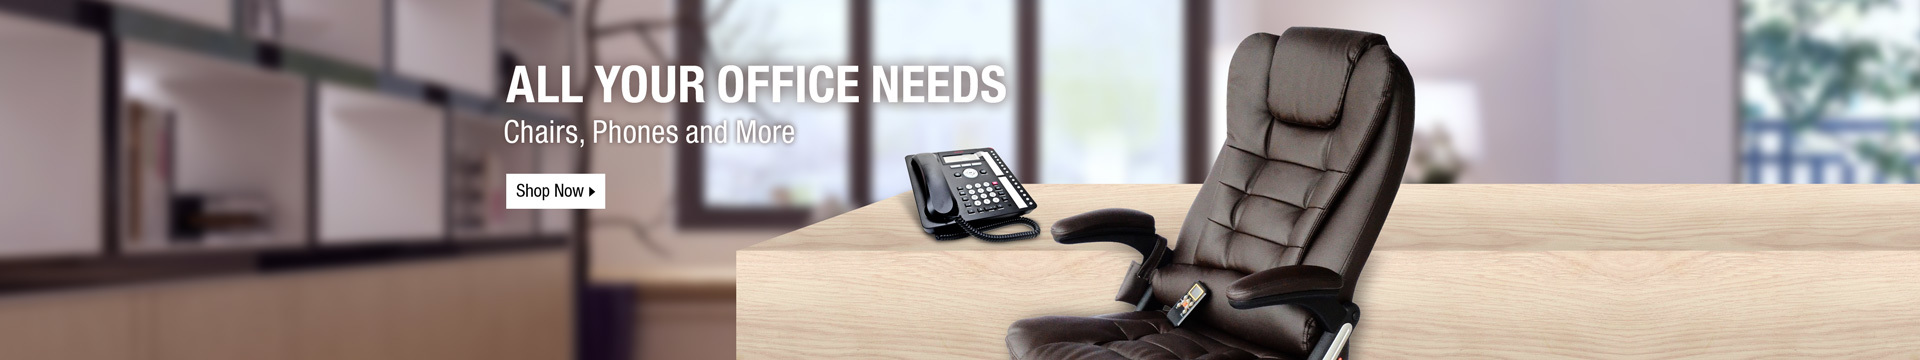 All your office needs